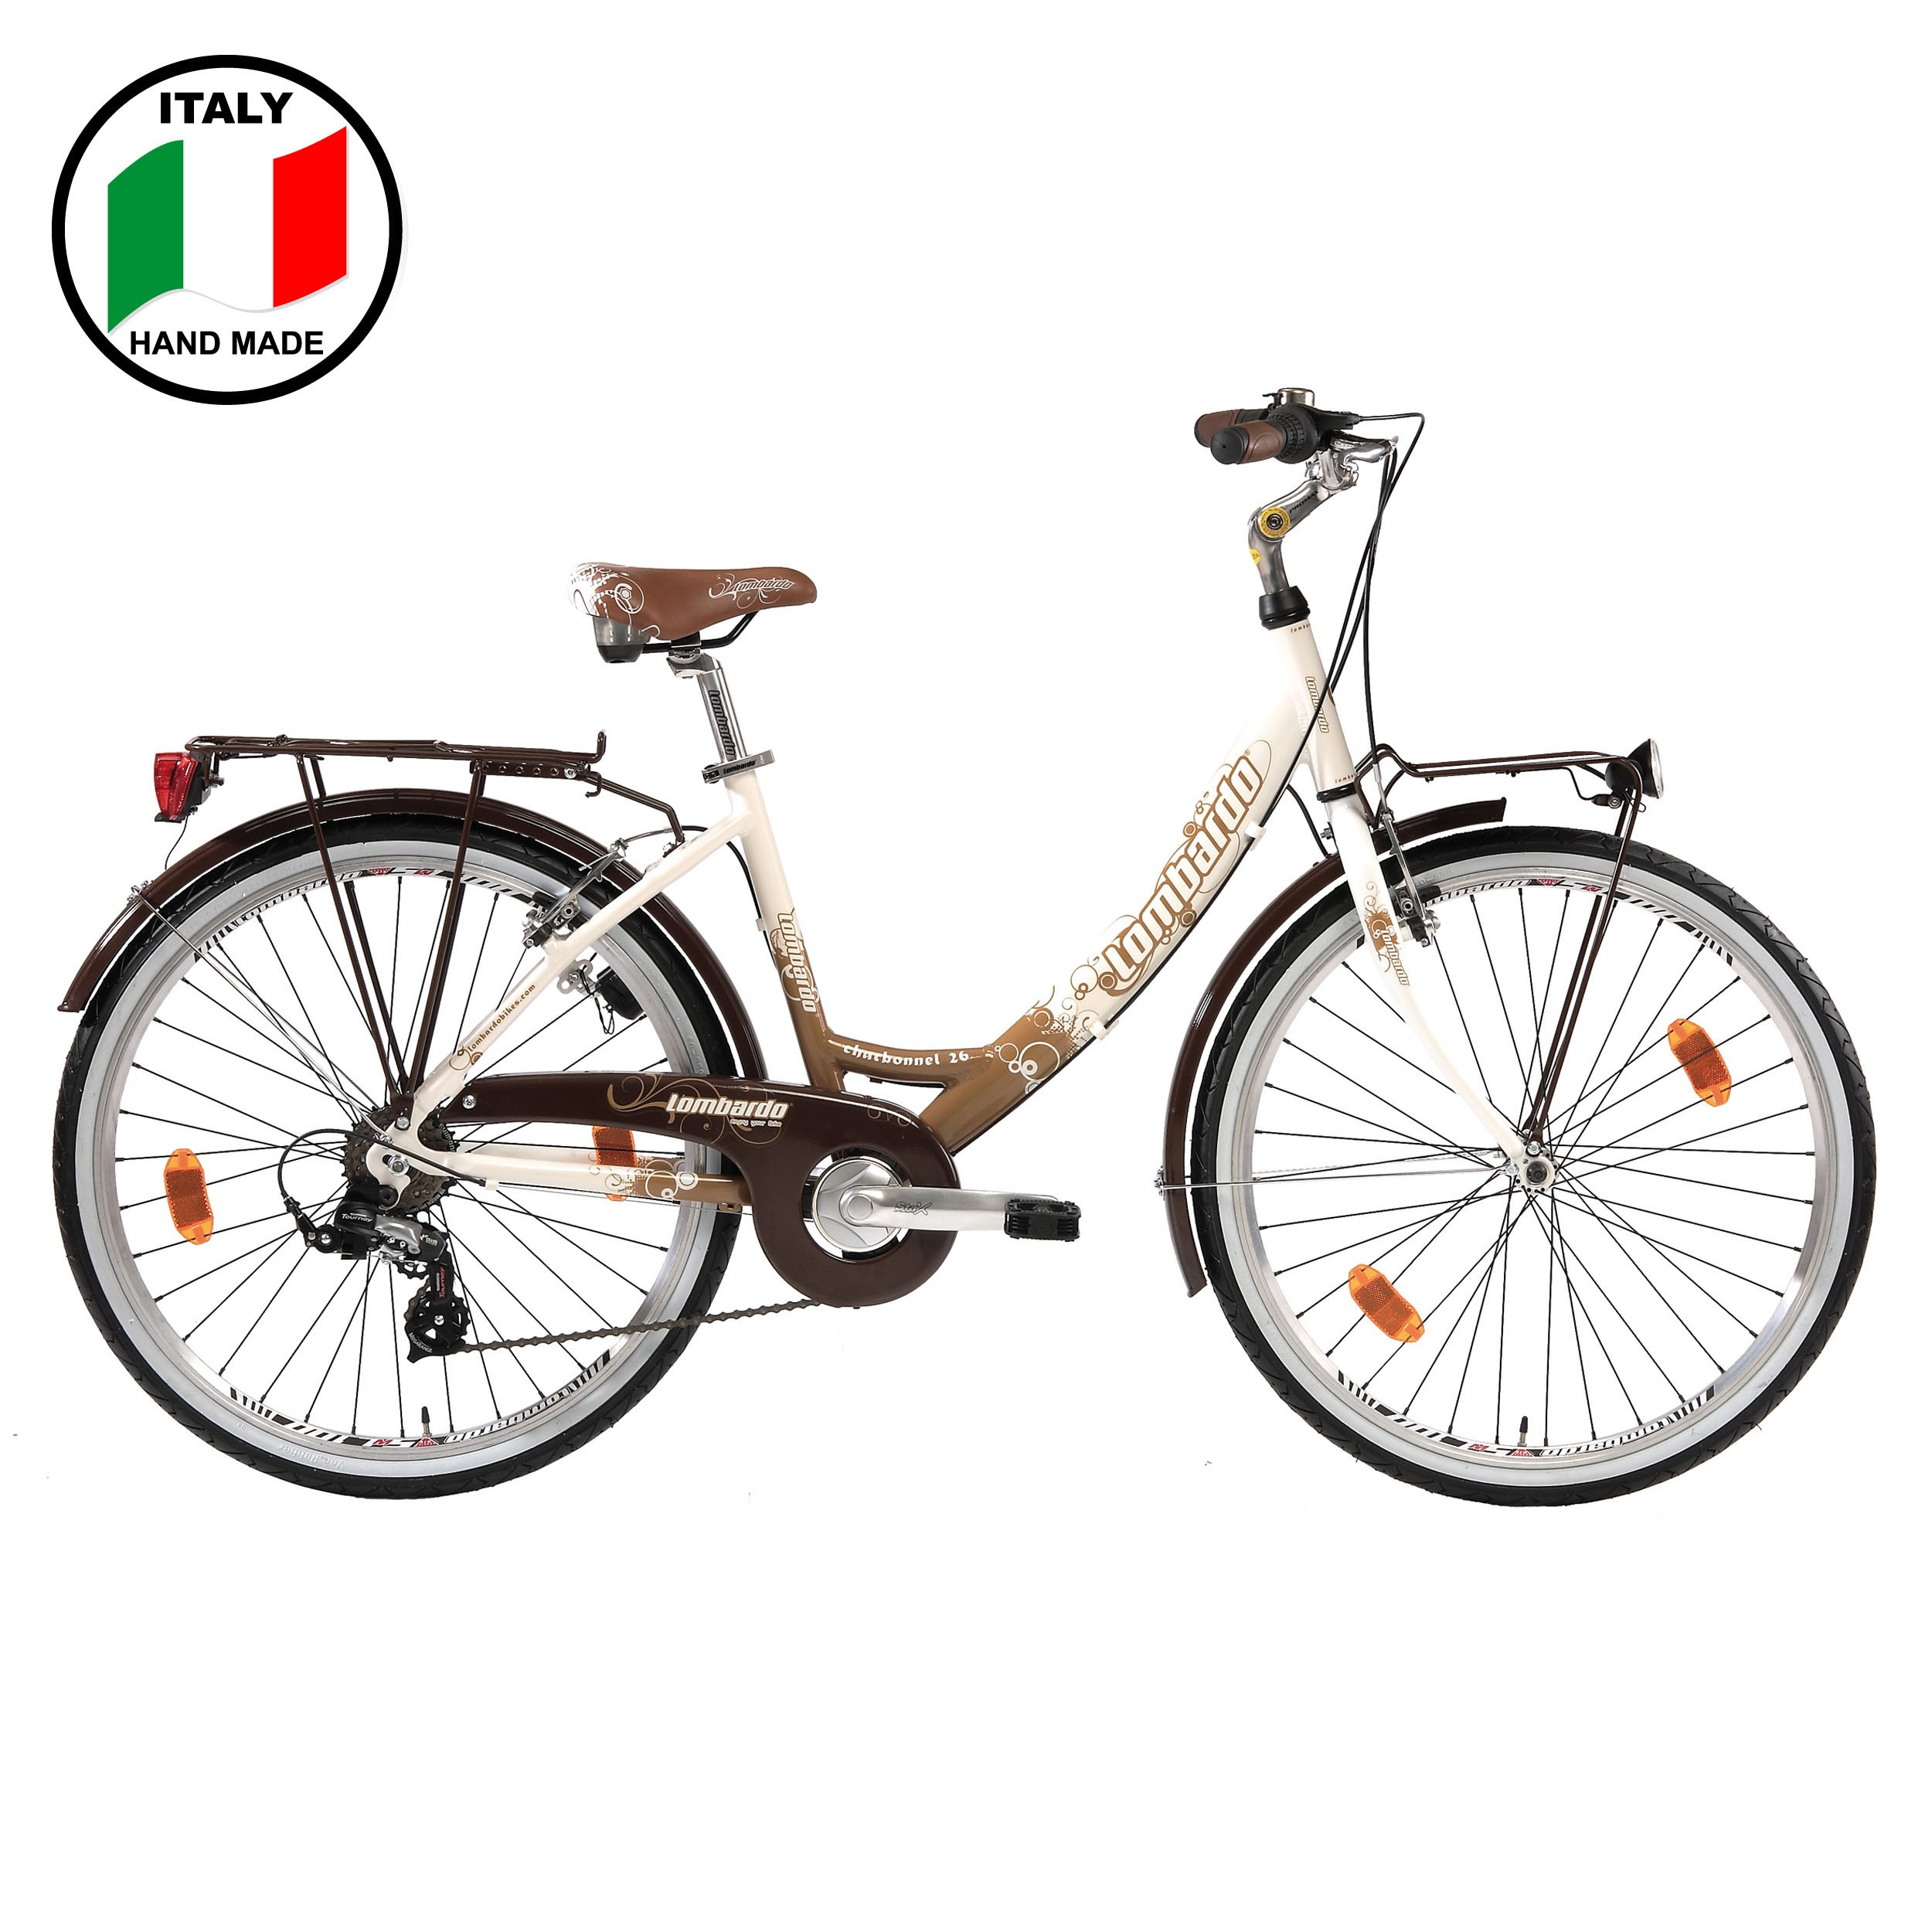 Lombardo Charbonnel Alloy 26 inch Bike-Brown and White